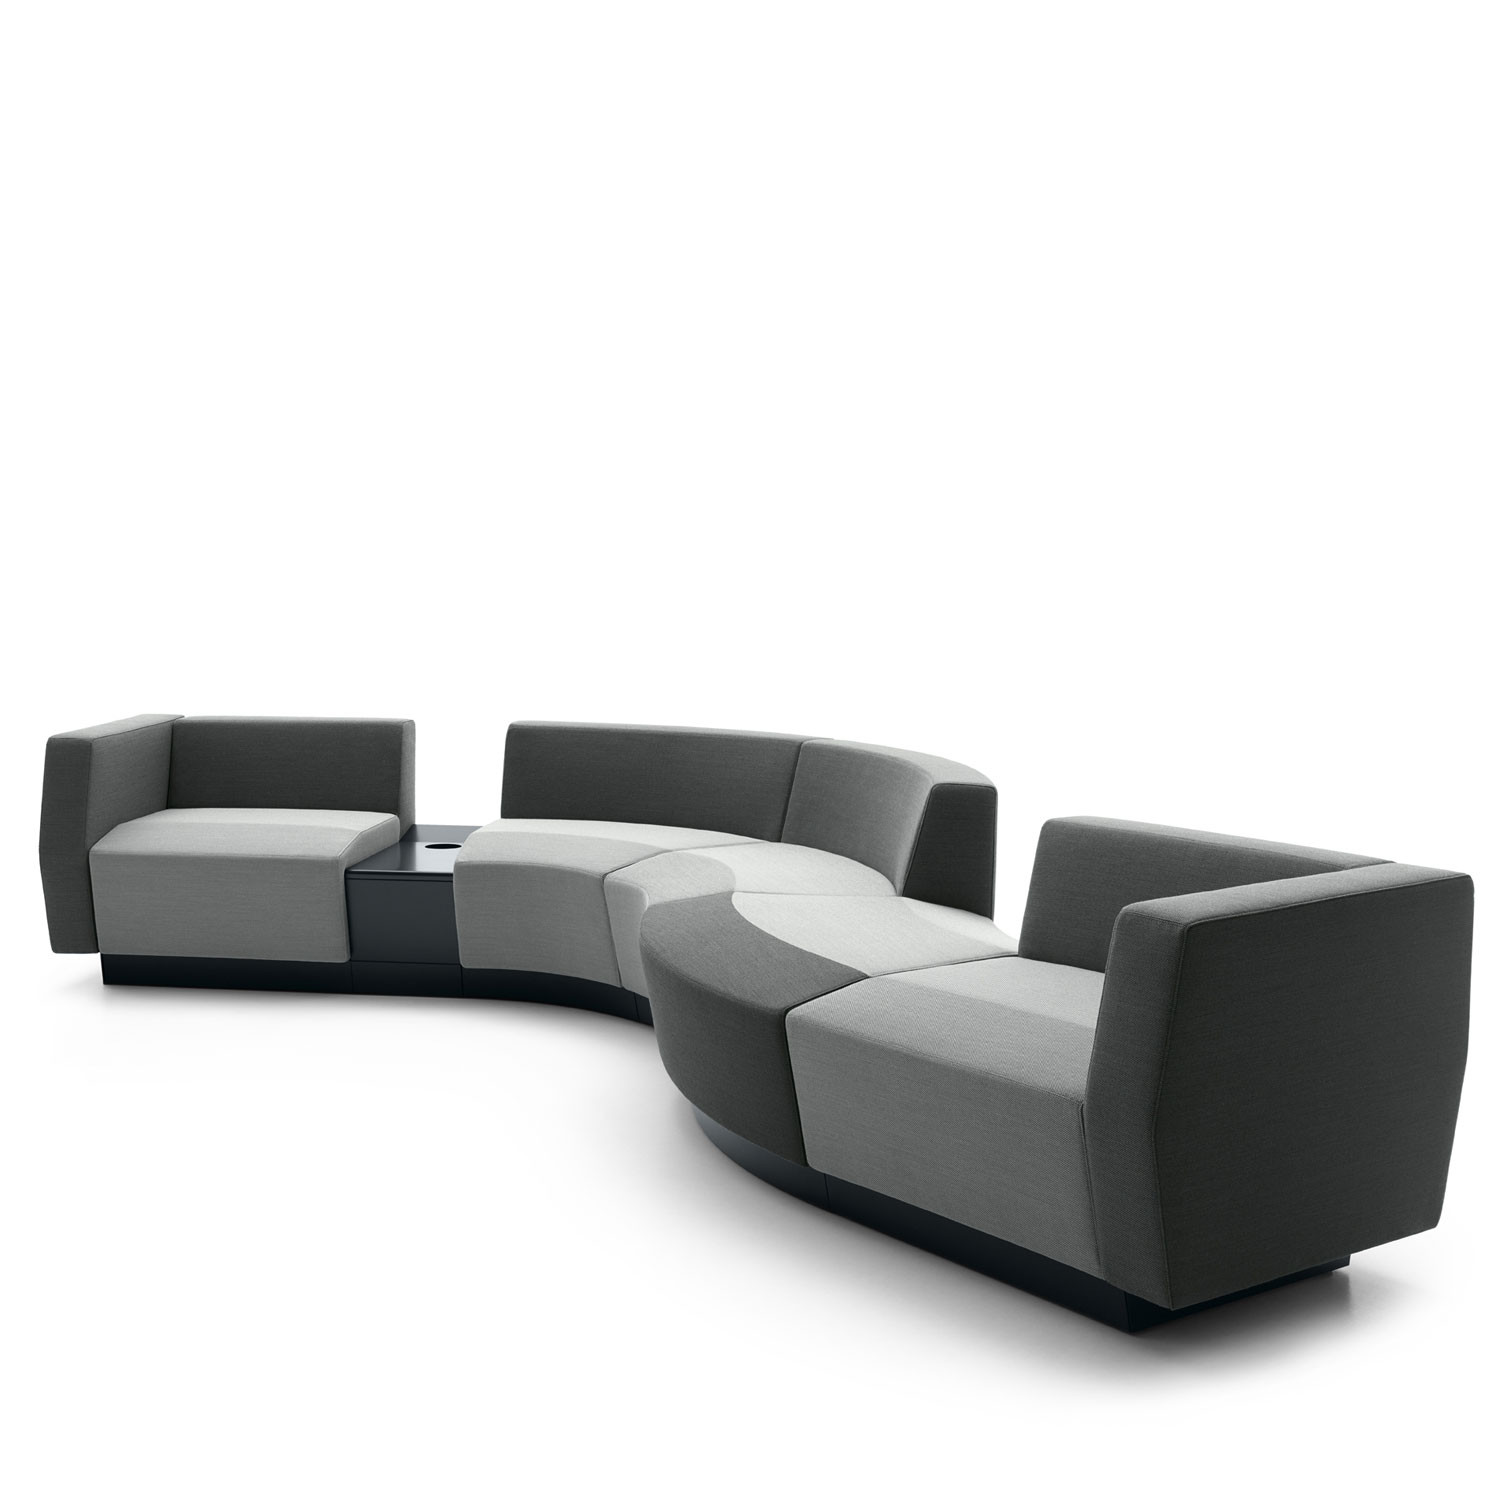 Affair Modular Soft Seating